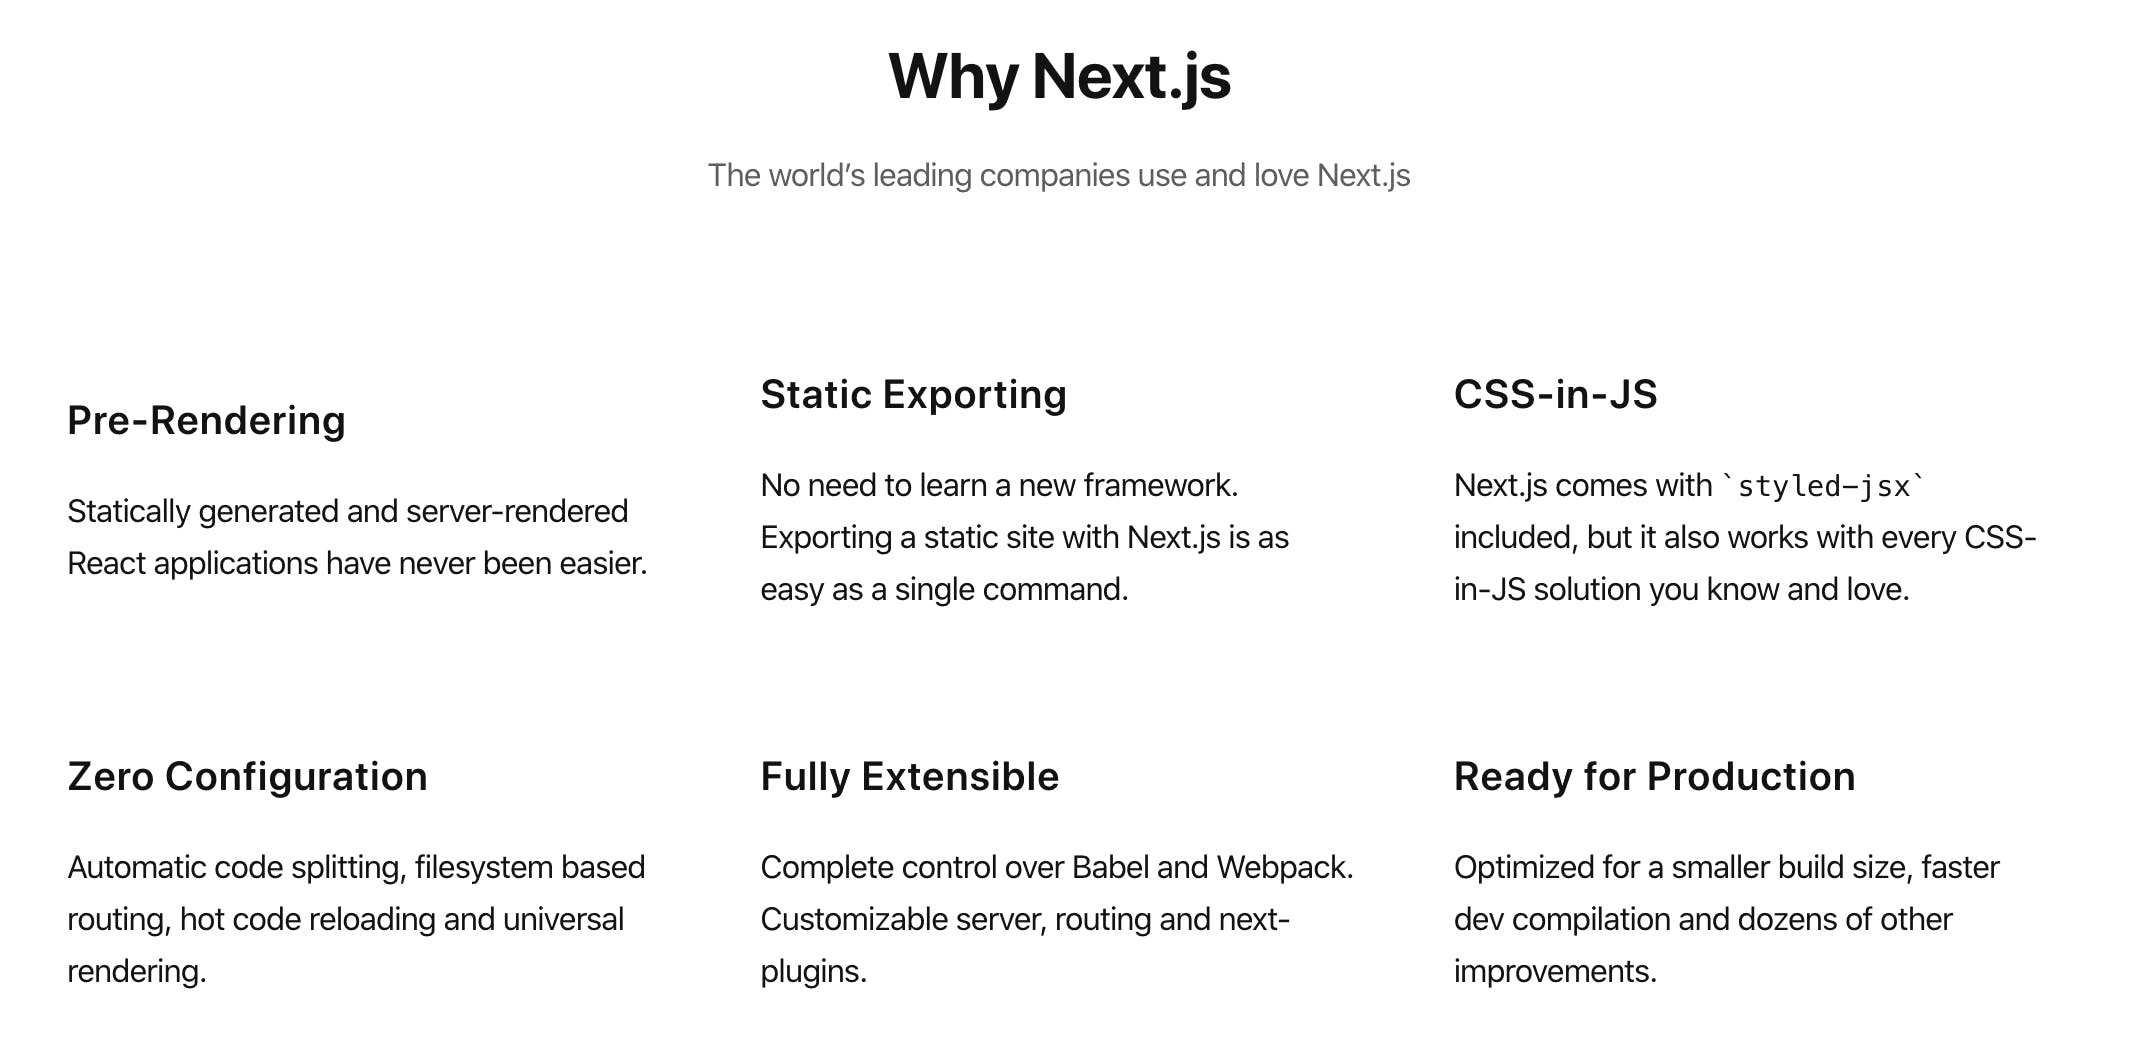 Why Next.js